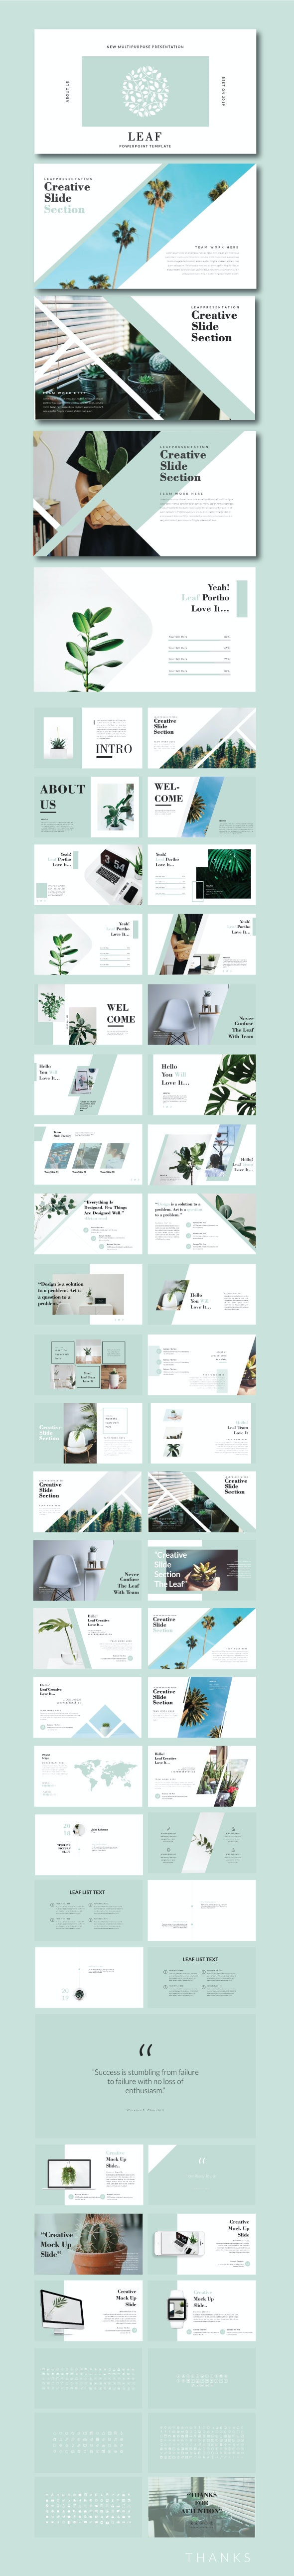 Leaf Powerpoint Template - Business PowerPoint Templates